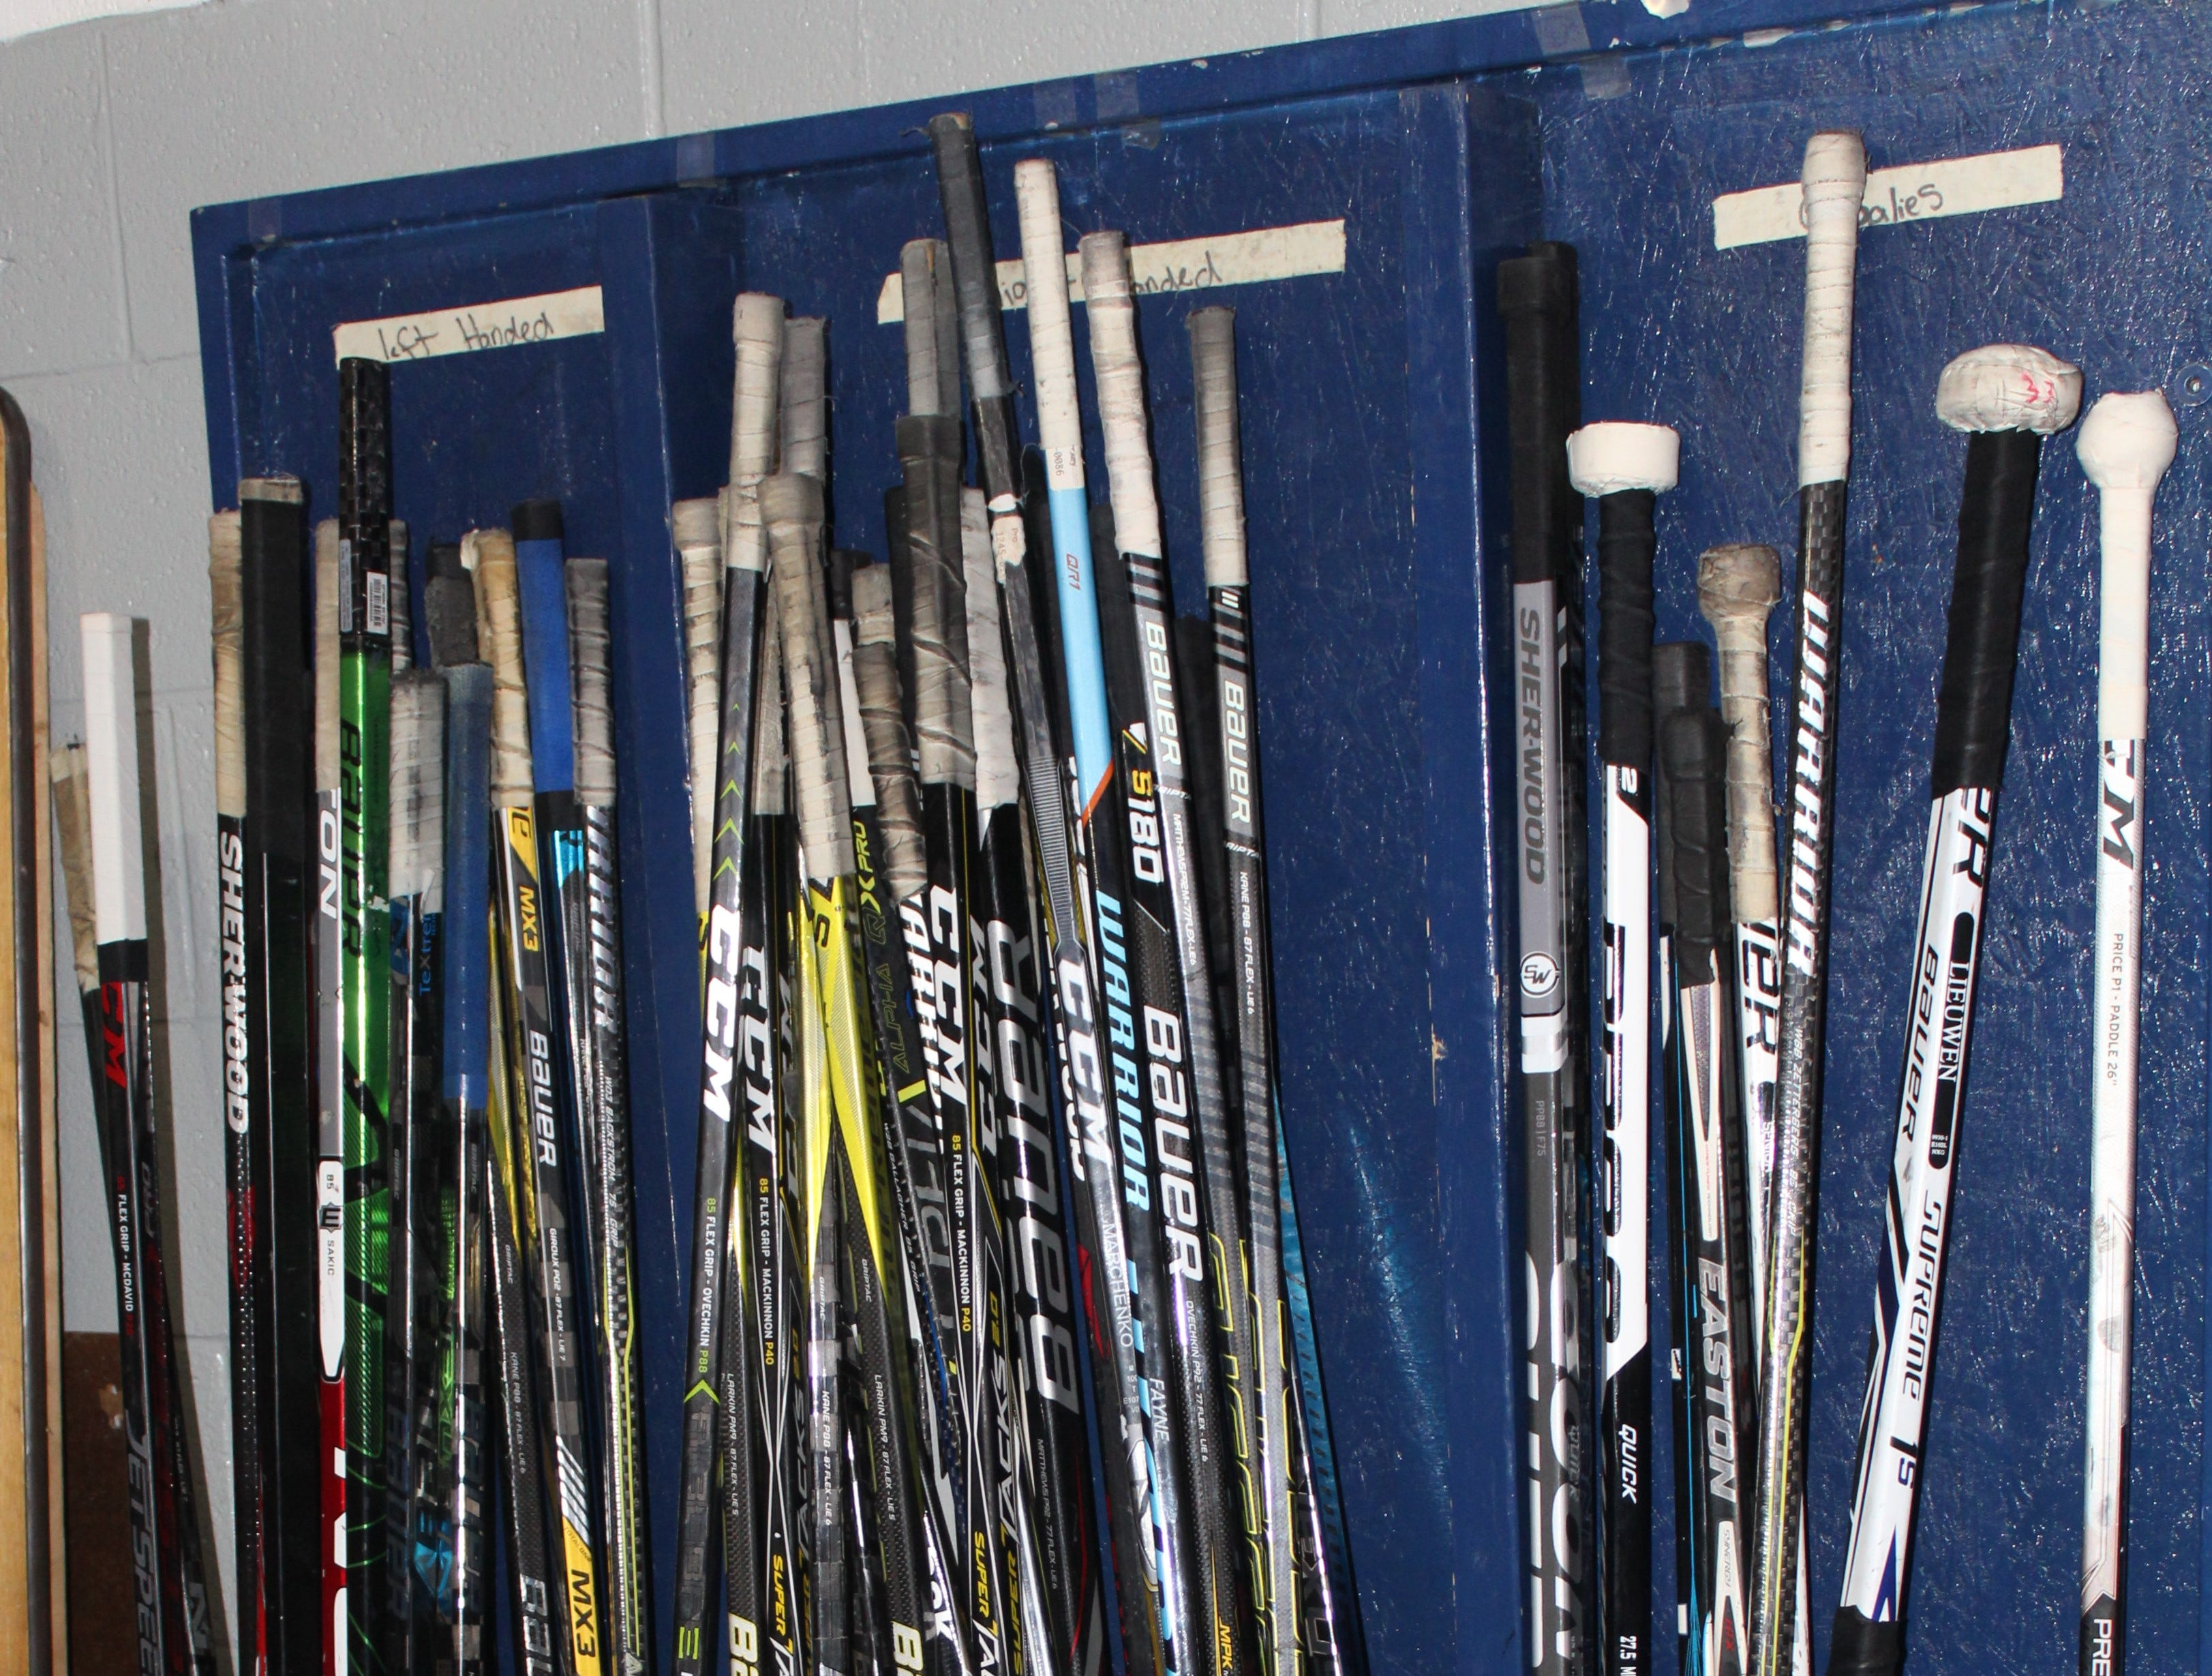 A new hockey rack is in place for South Lyon Unified's hockey team members.